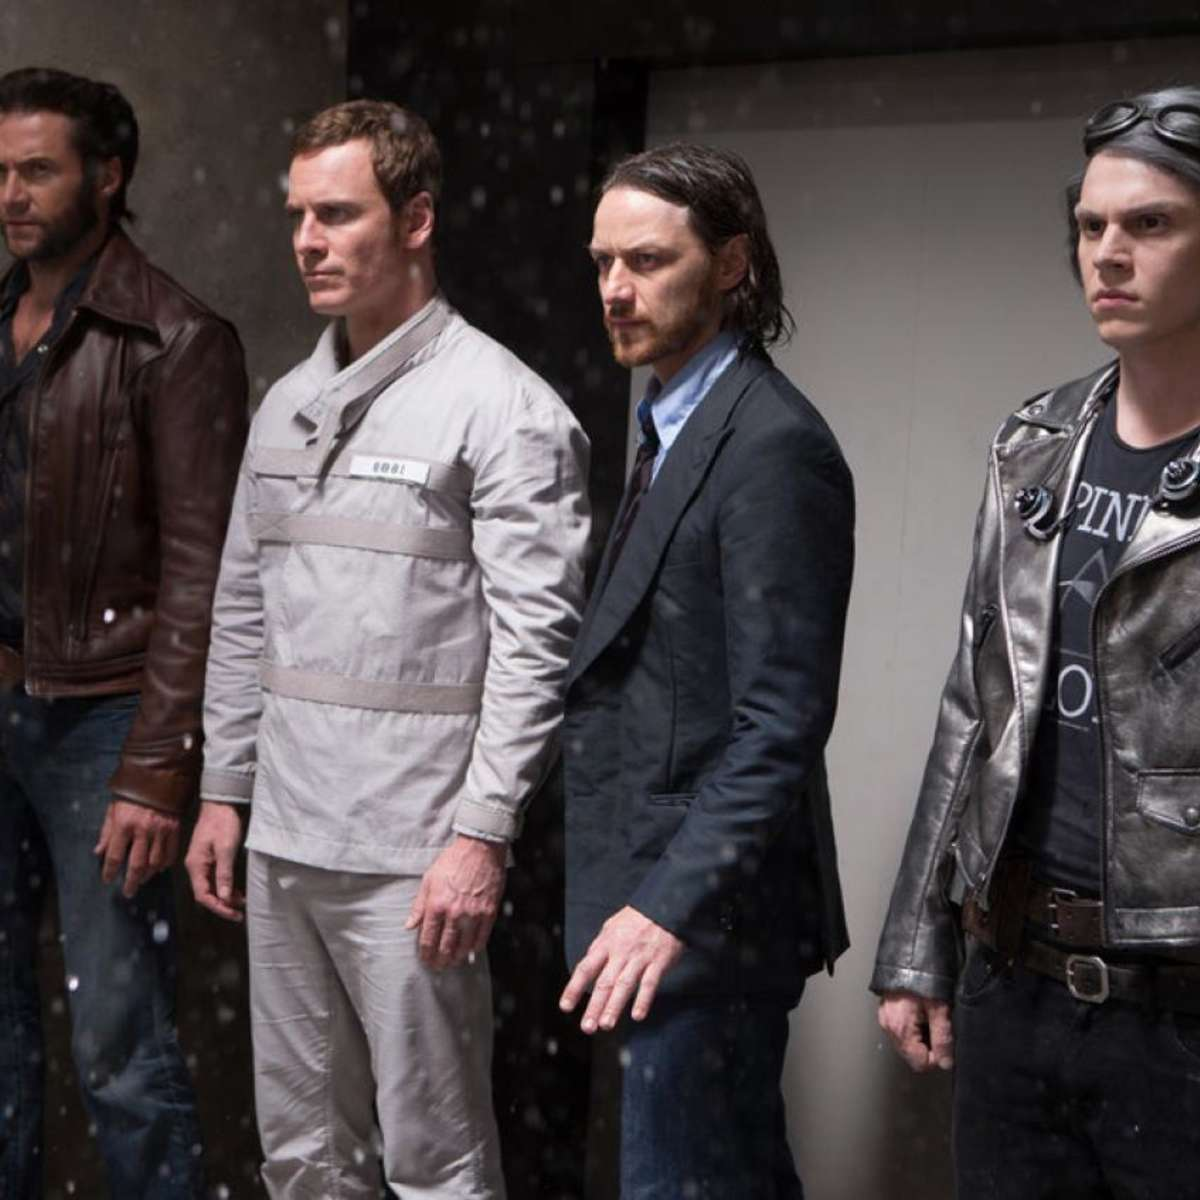 X-Men-Days-of-Future-Past-Photos-4_0.jpg